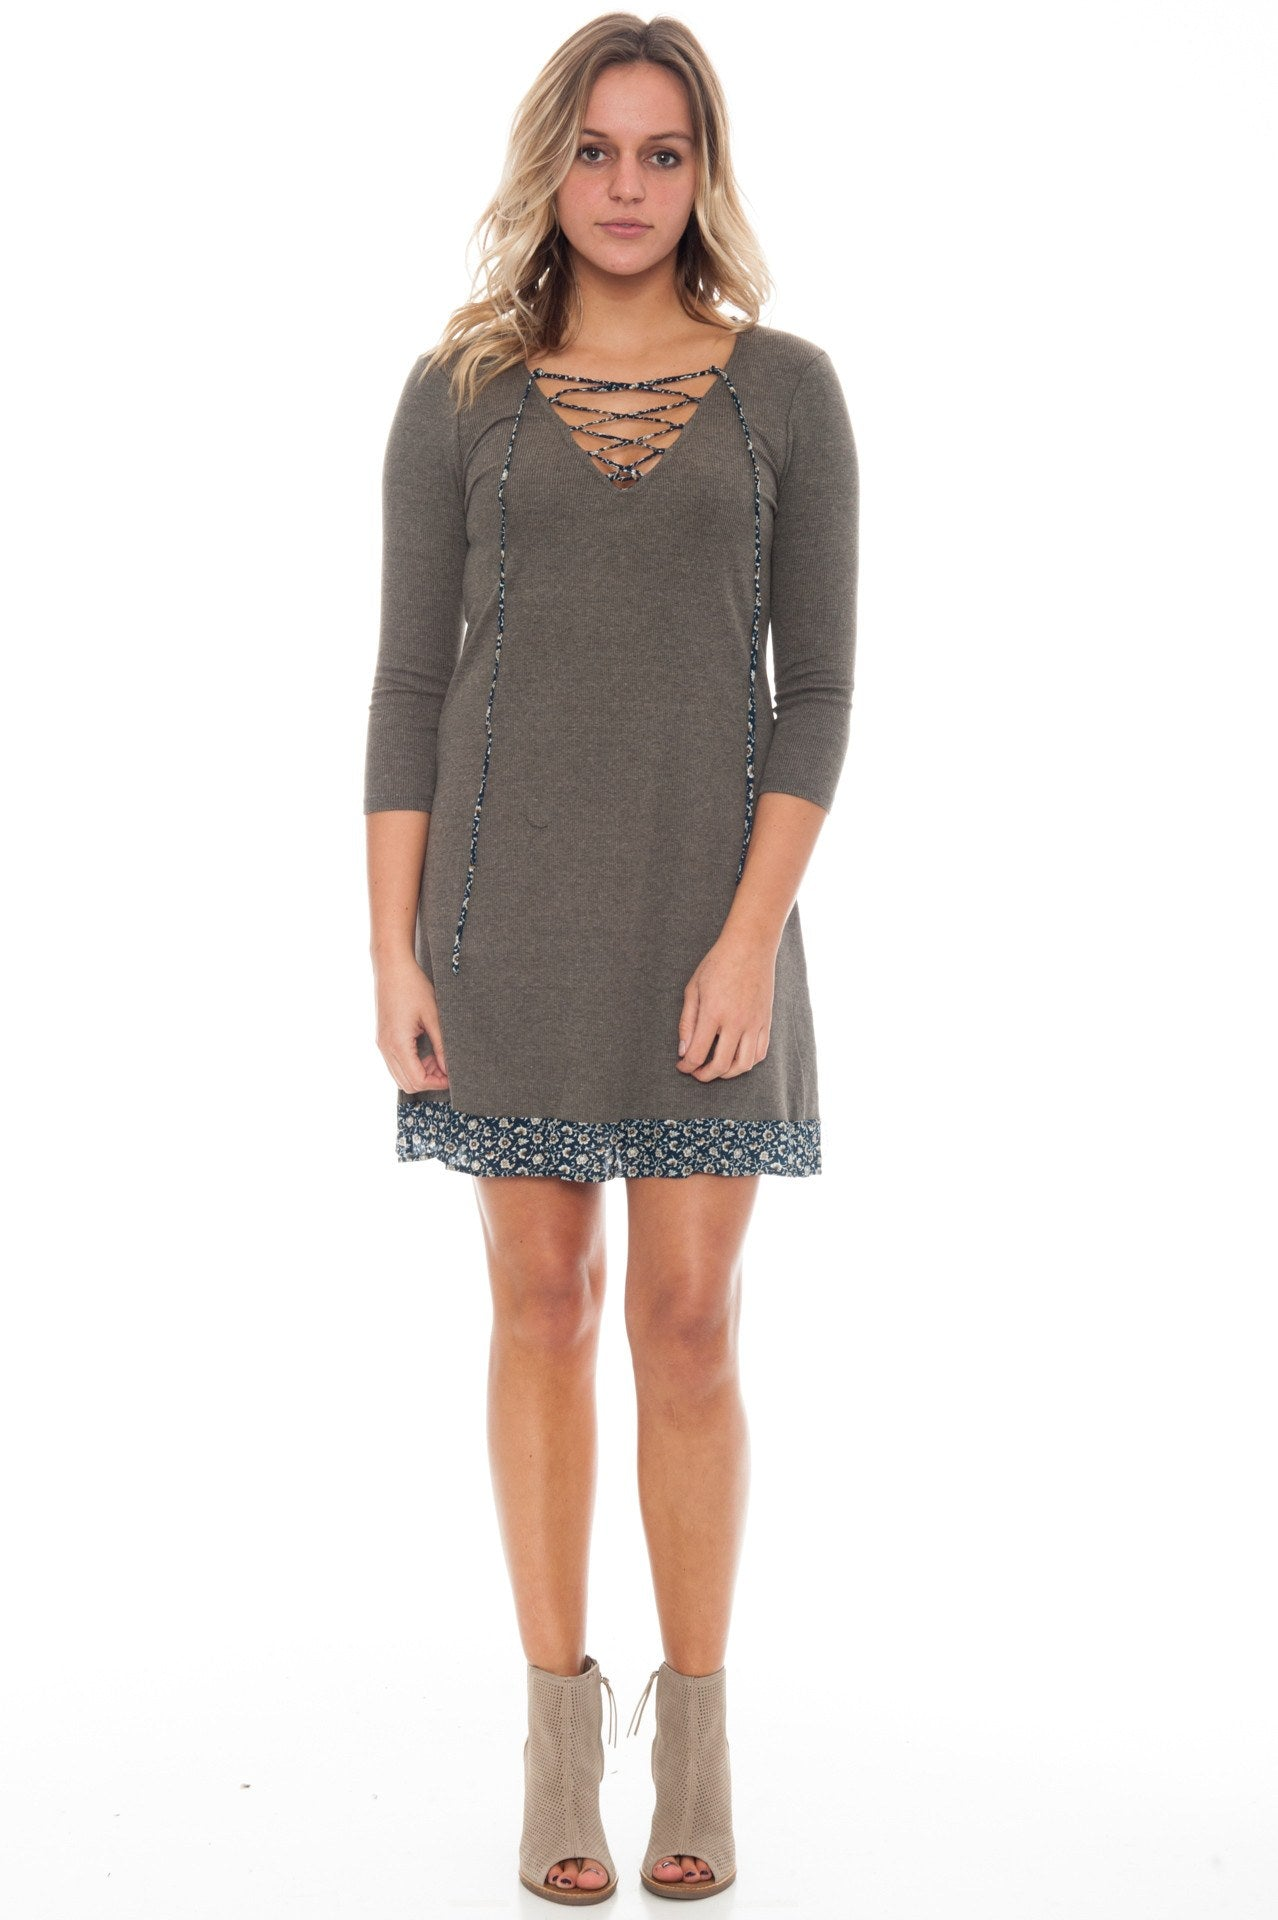 Dress - Lace up Ribbed